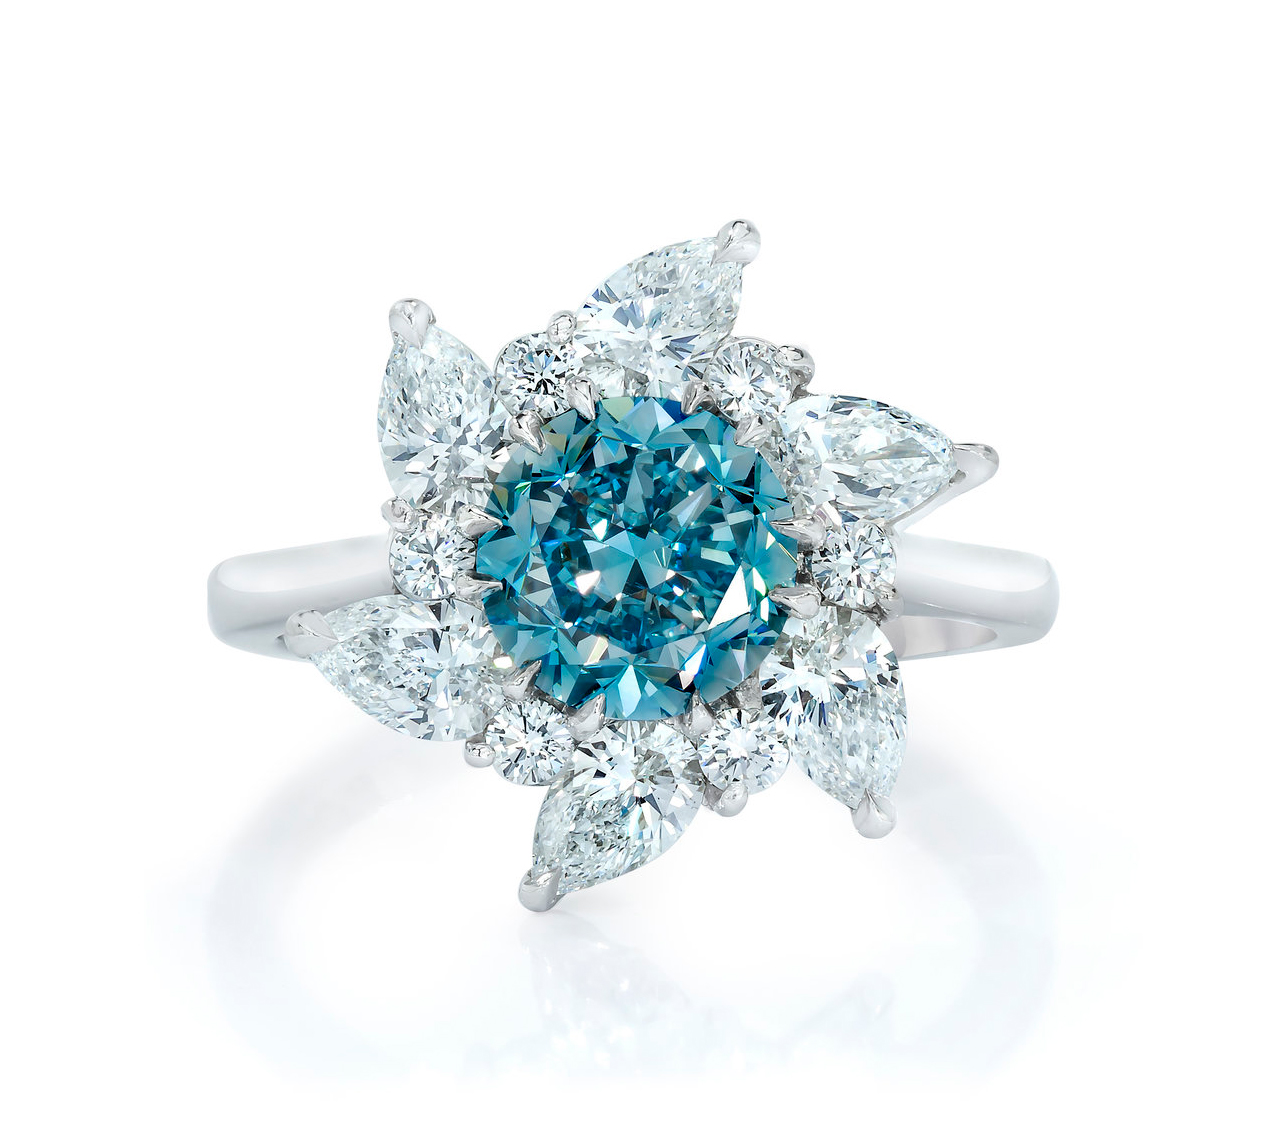 The Light of Erasmus Ring - An extremely rare 1.63-carat Fancy Vivid Greenish-Blue round diamond set in a platinum designer floral setting. This jewel conjures radiance and the natural beauty of the Caribbean. It also has a letter of rarity from the GIA.